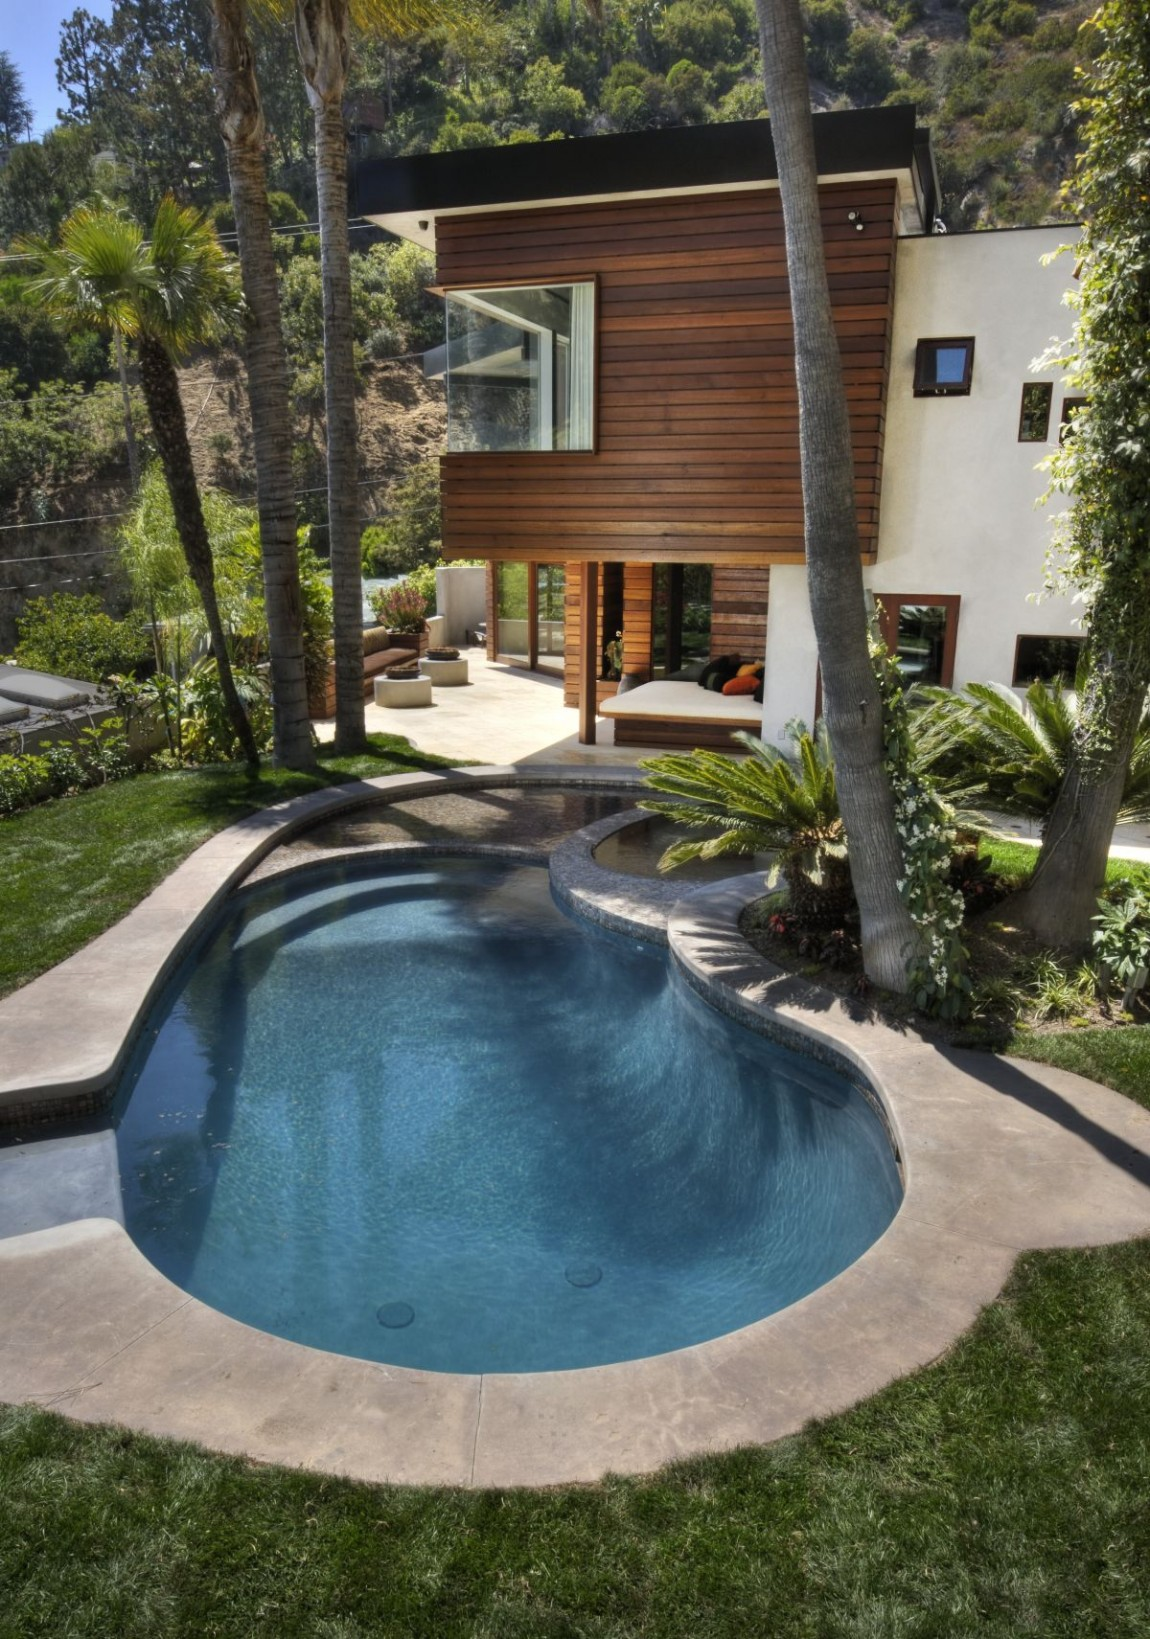 houses with cozy quiet and relaxing backyard pools